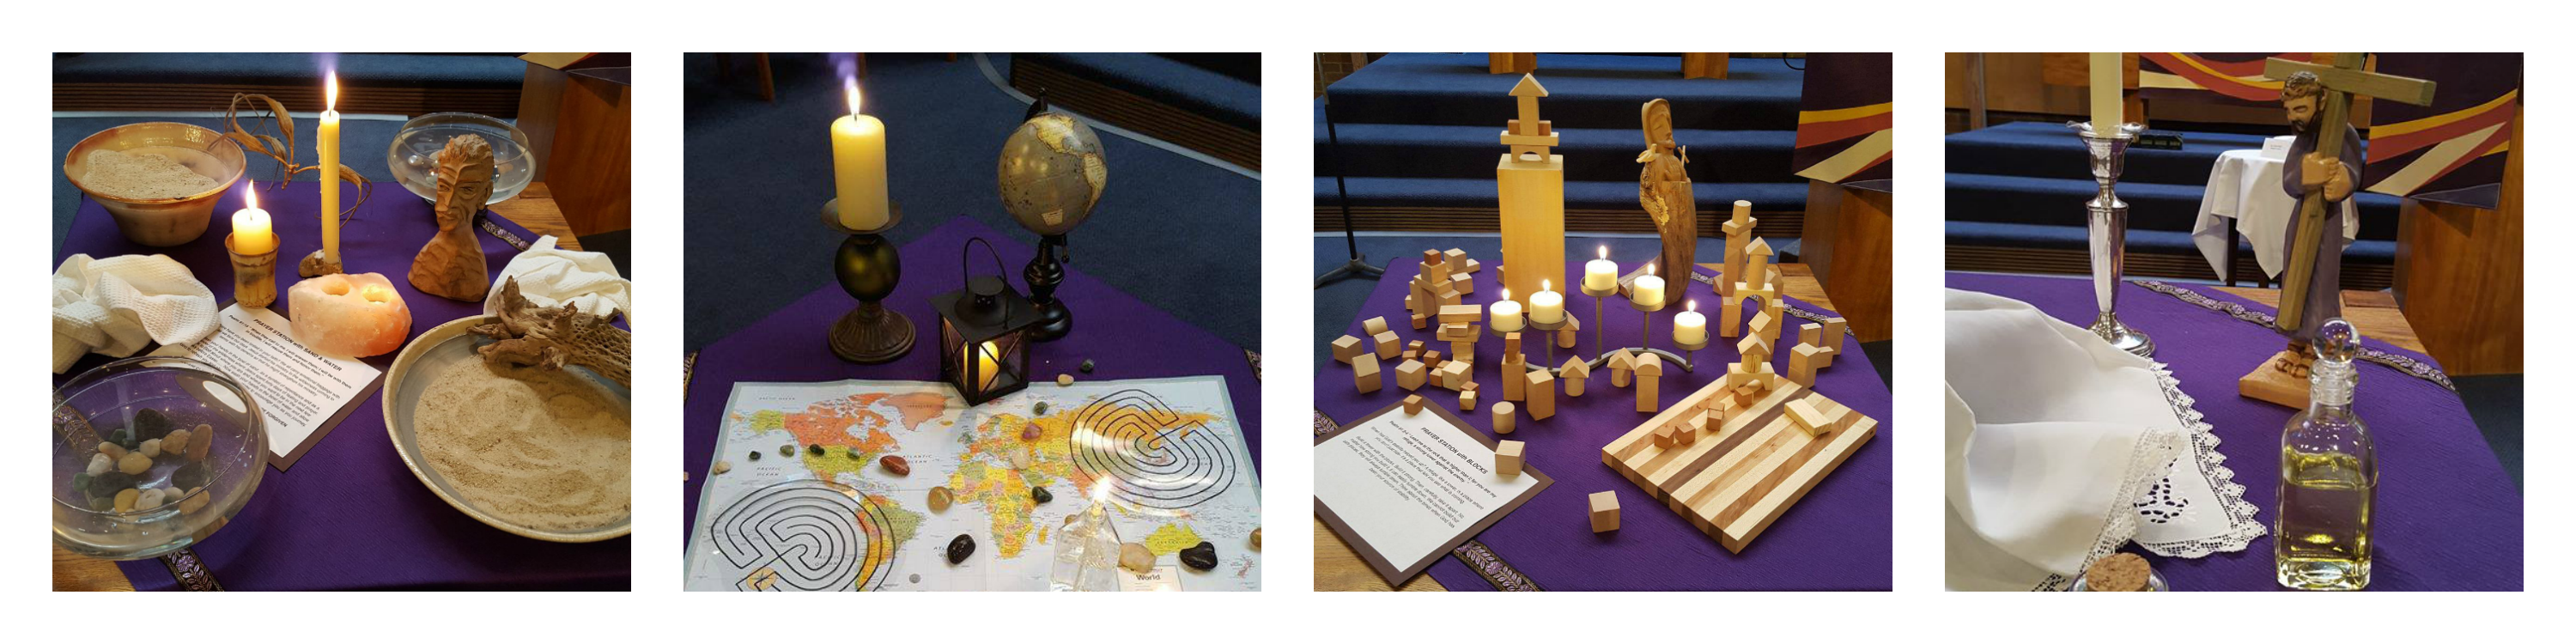 Lent Prayer Stations